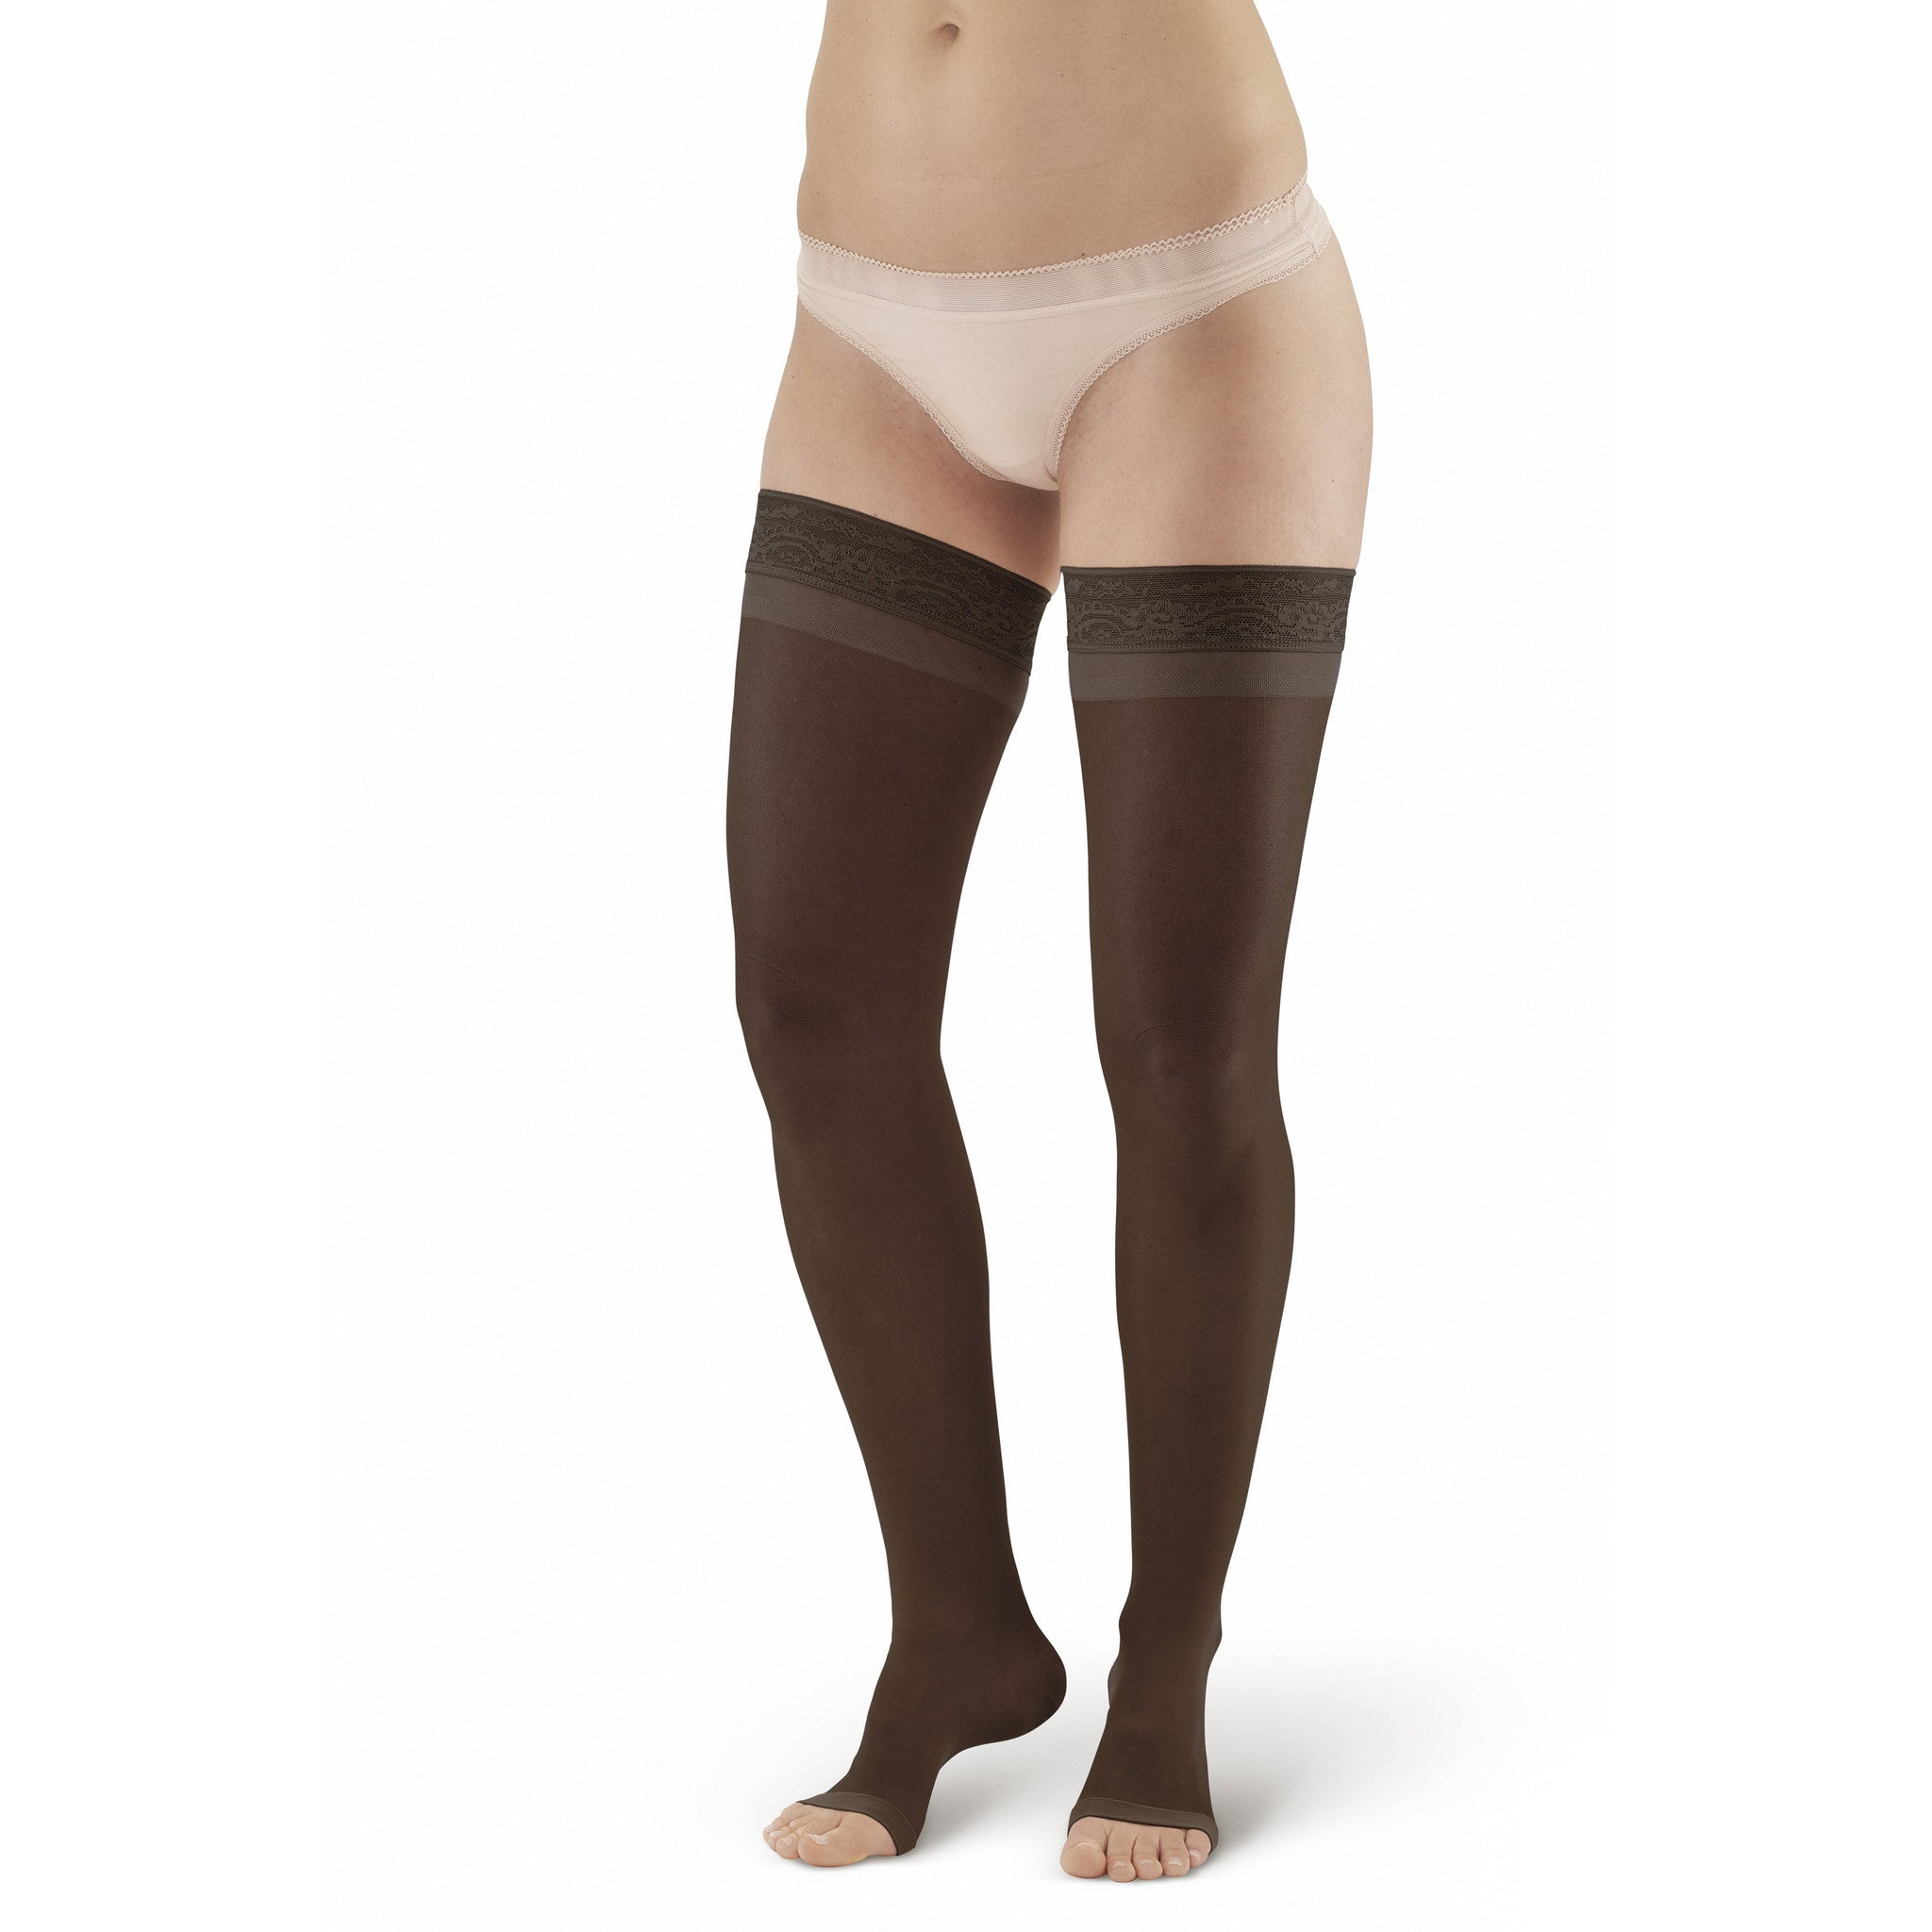 4f5bb26919e ... AW Style 48 Sheer Support Open Toe Thigh Highs w  Lace Band - 20- ...